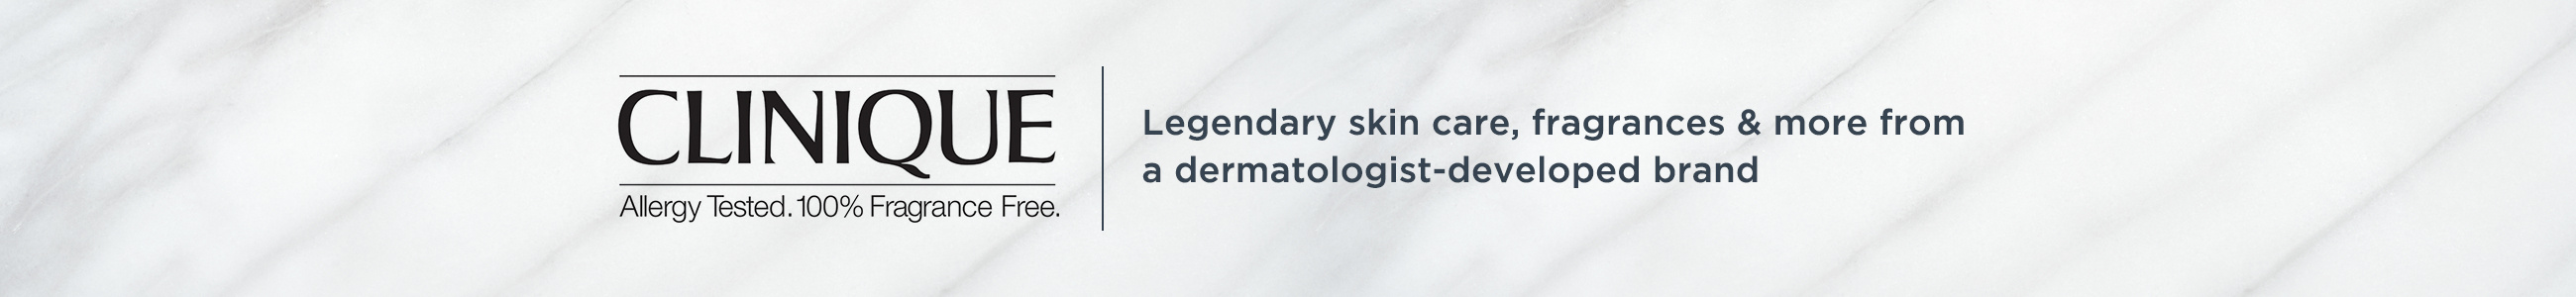 Clinique, Treat your skin to a full line of dermatologist-developed products